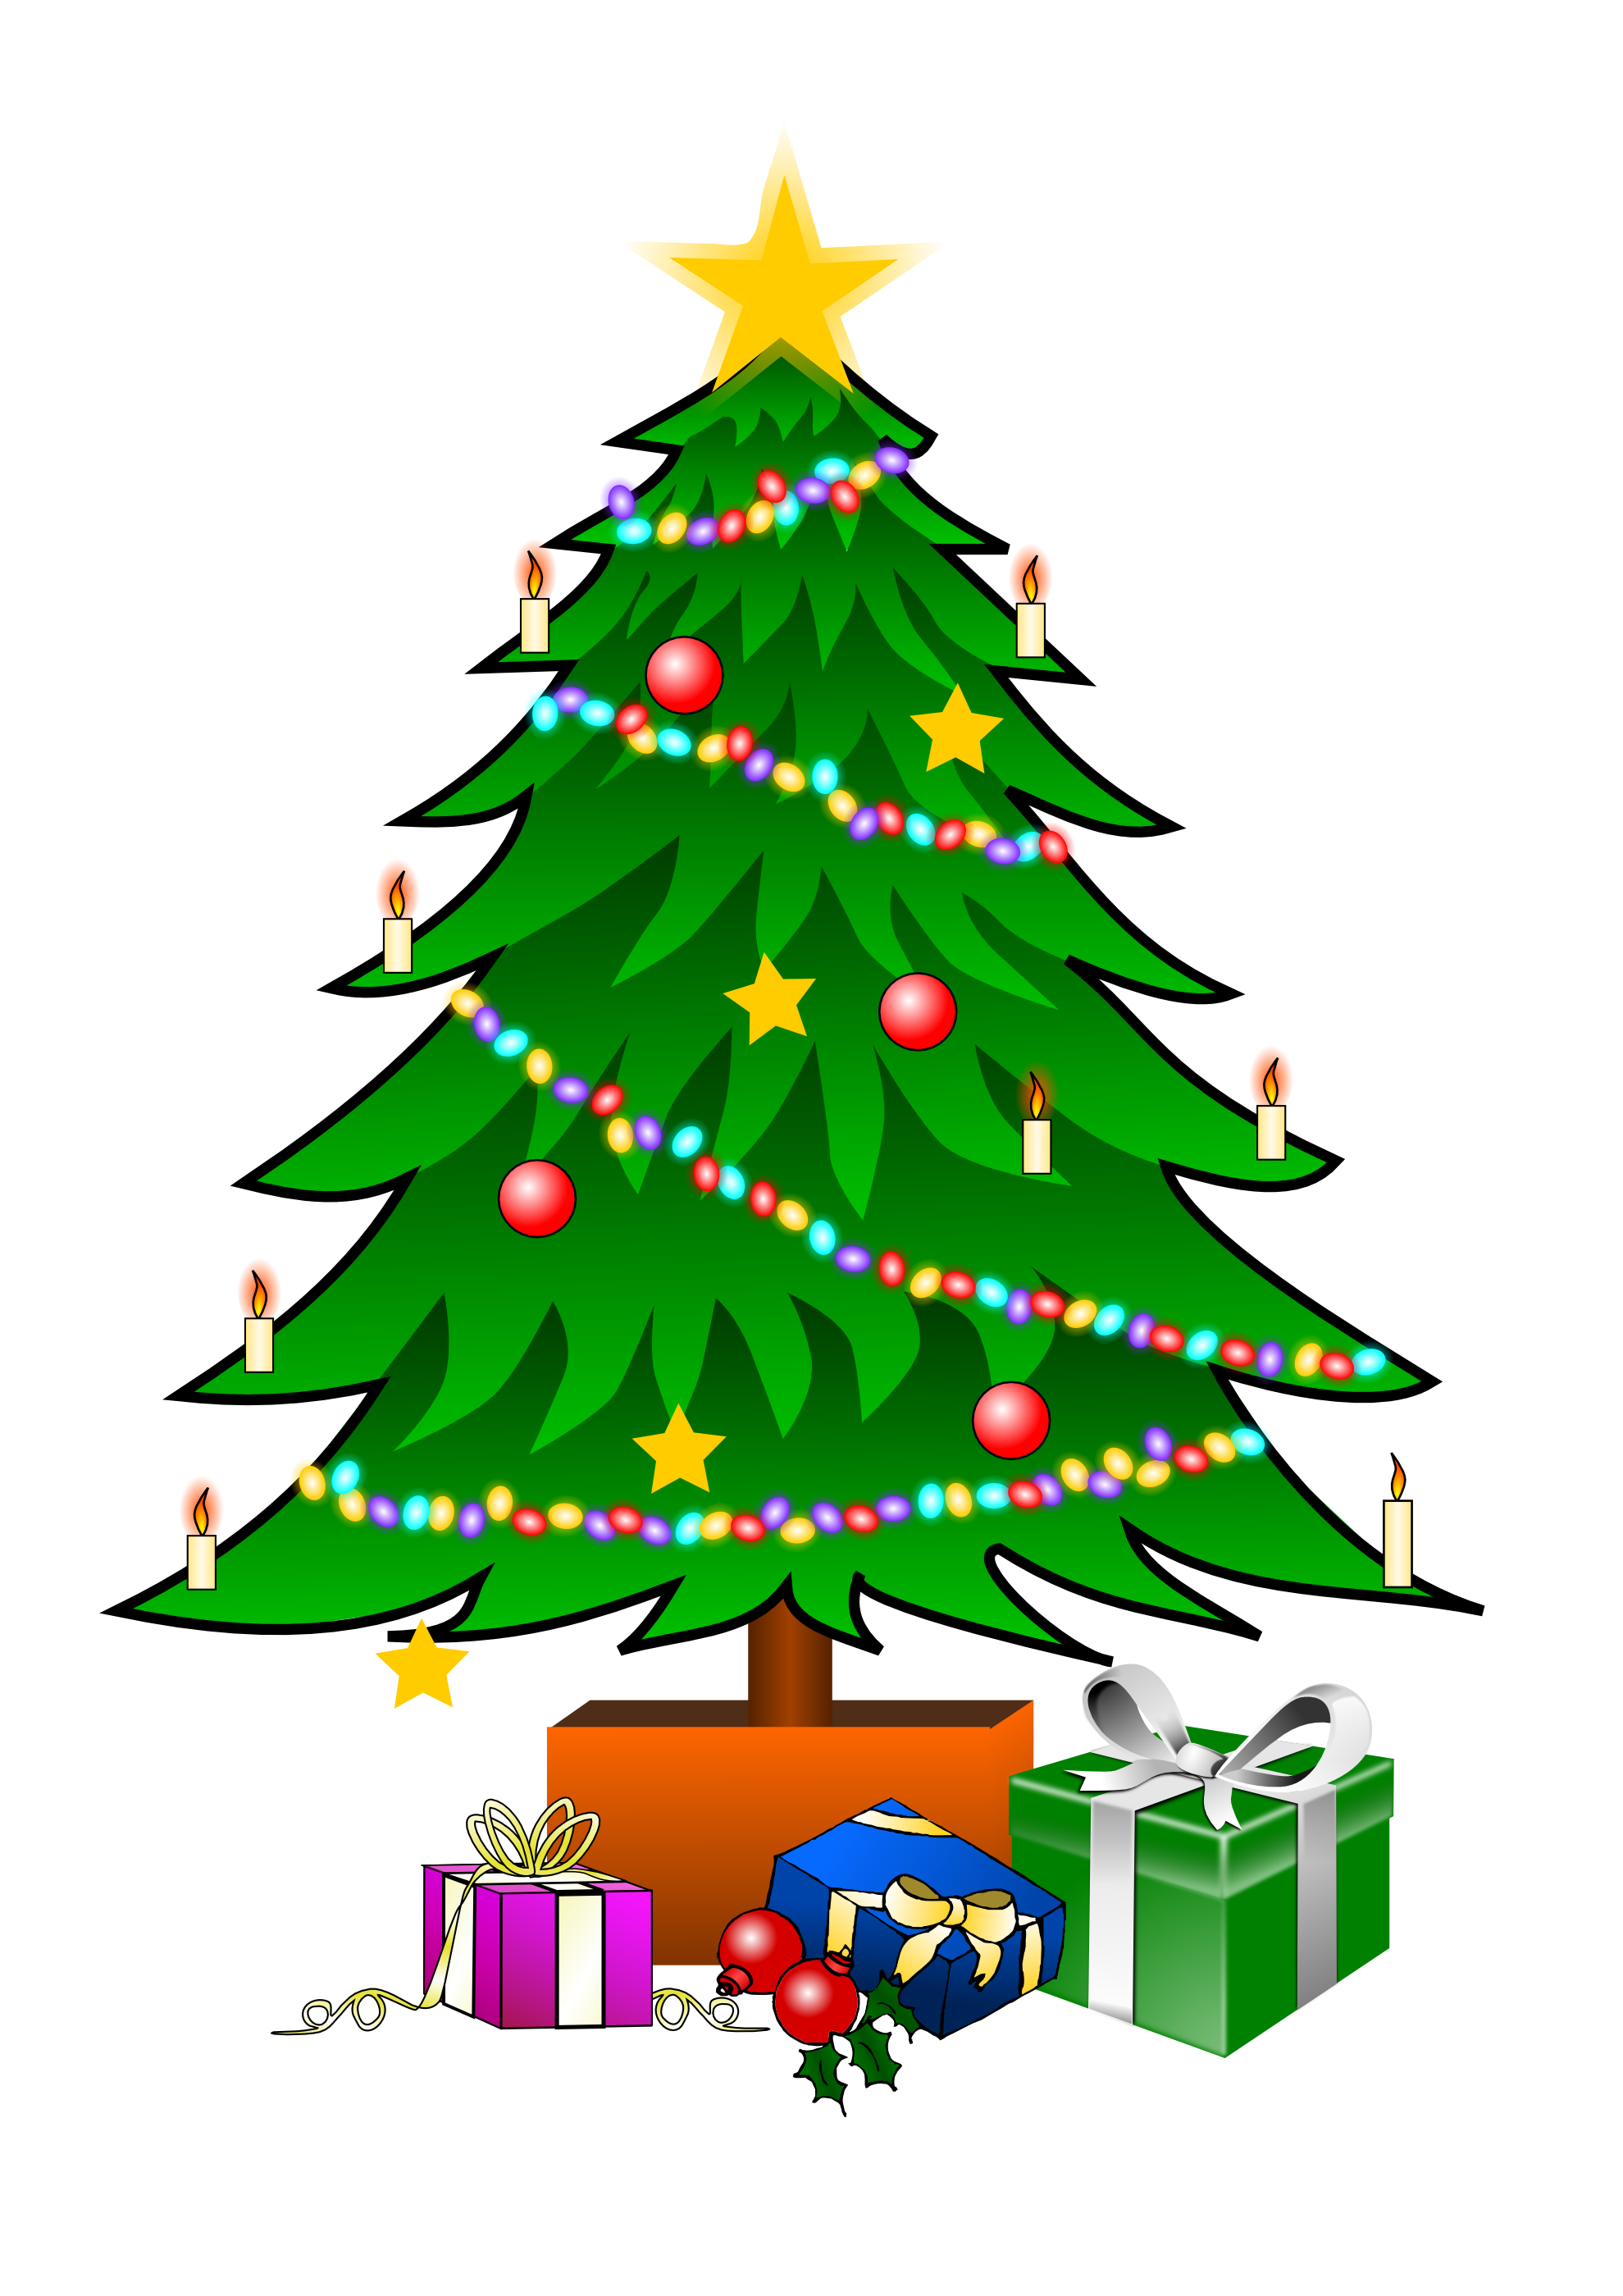 Xmas Tree Clipart at GetDrawings.com.